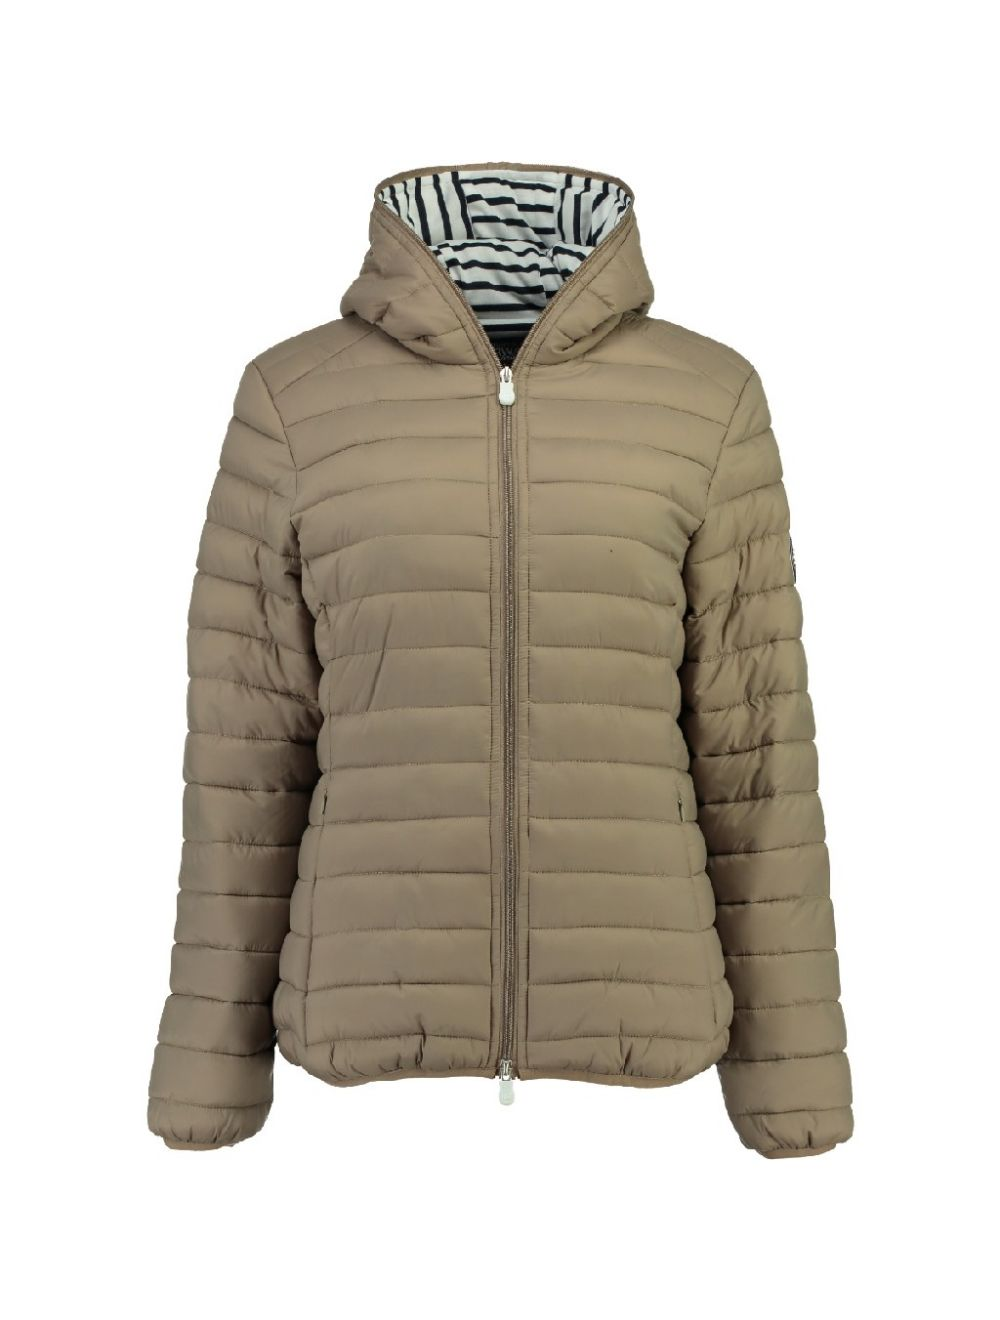 CHAQUETA DE MUJER DINETTE HOOD 056 TAUPE